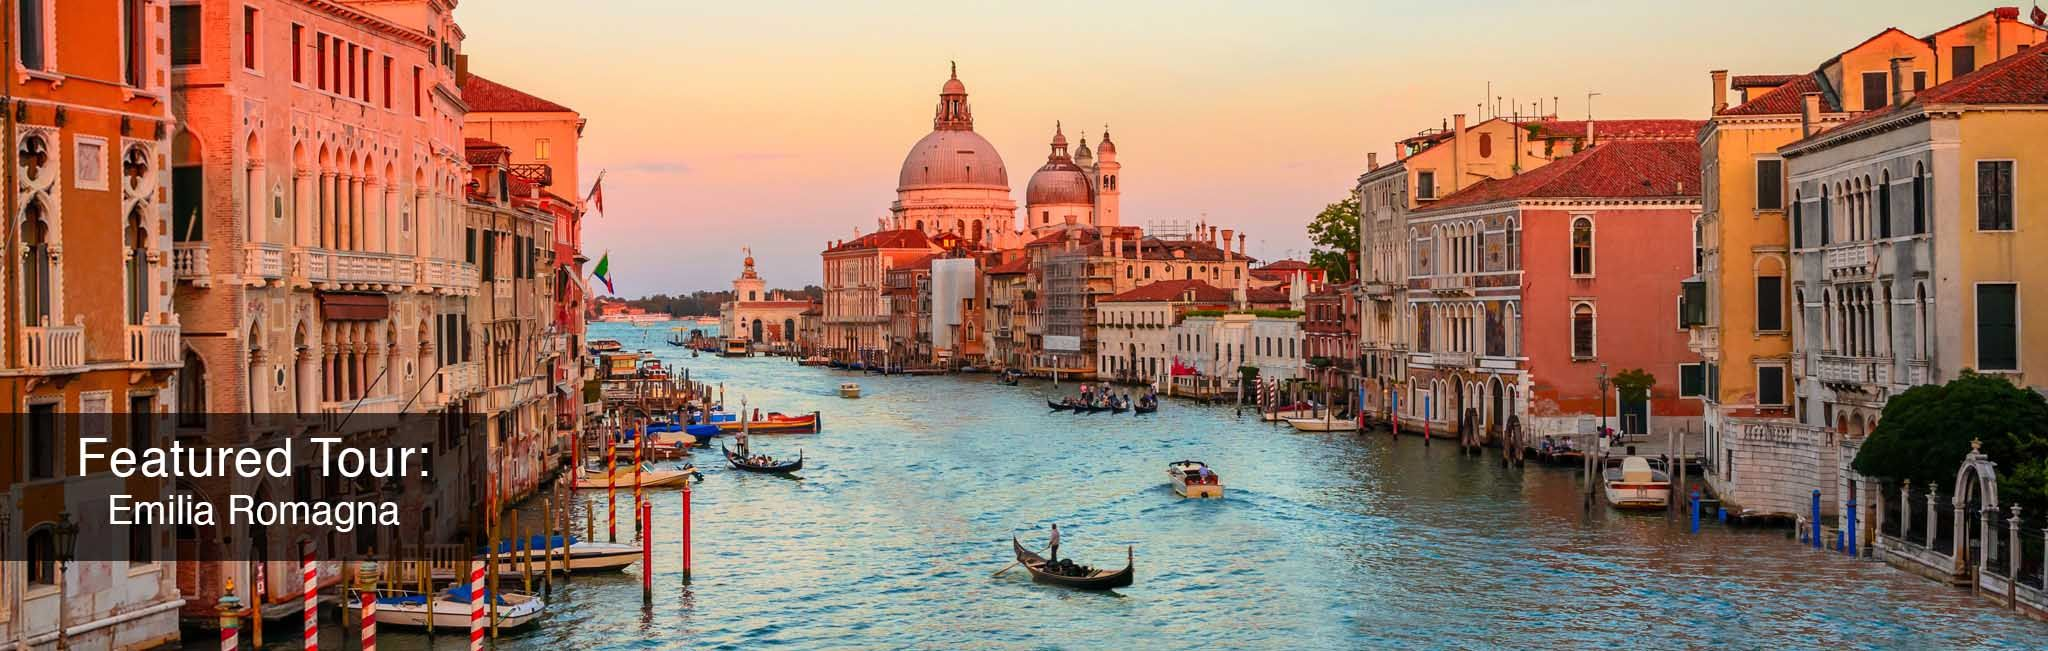 Best Italy Tours | Italy Vacations & Travel Packages 2018 ...